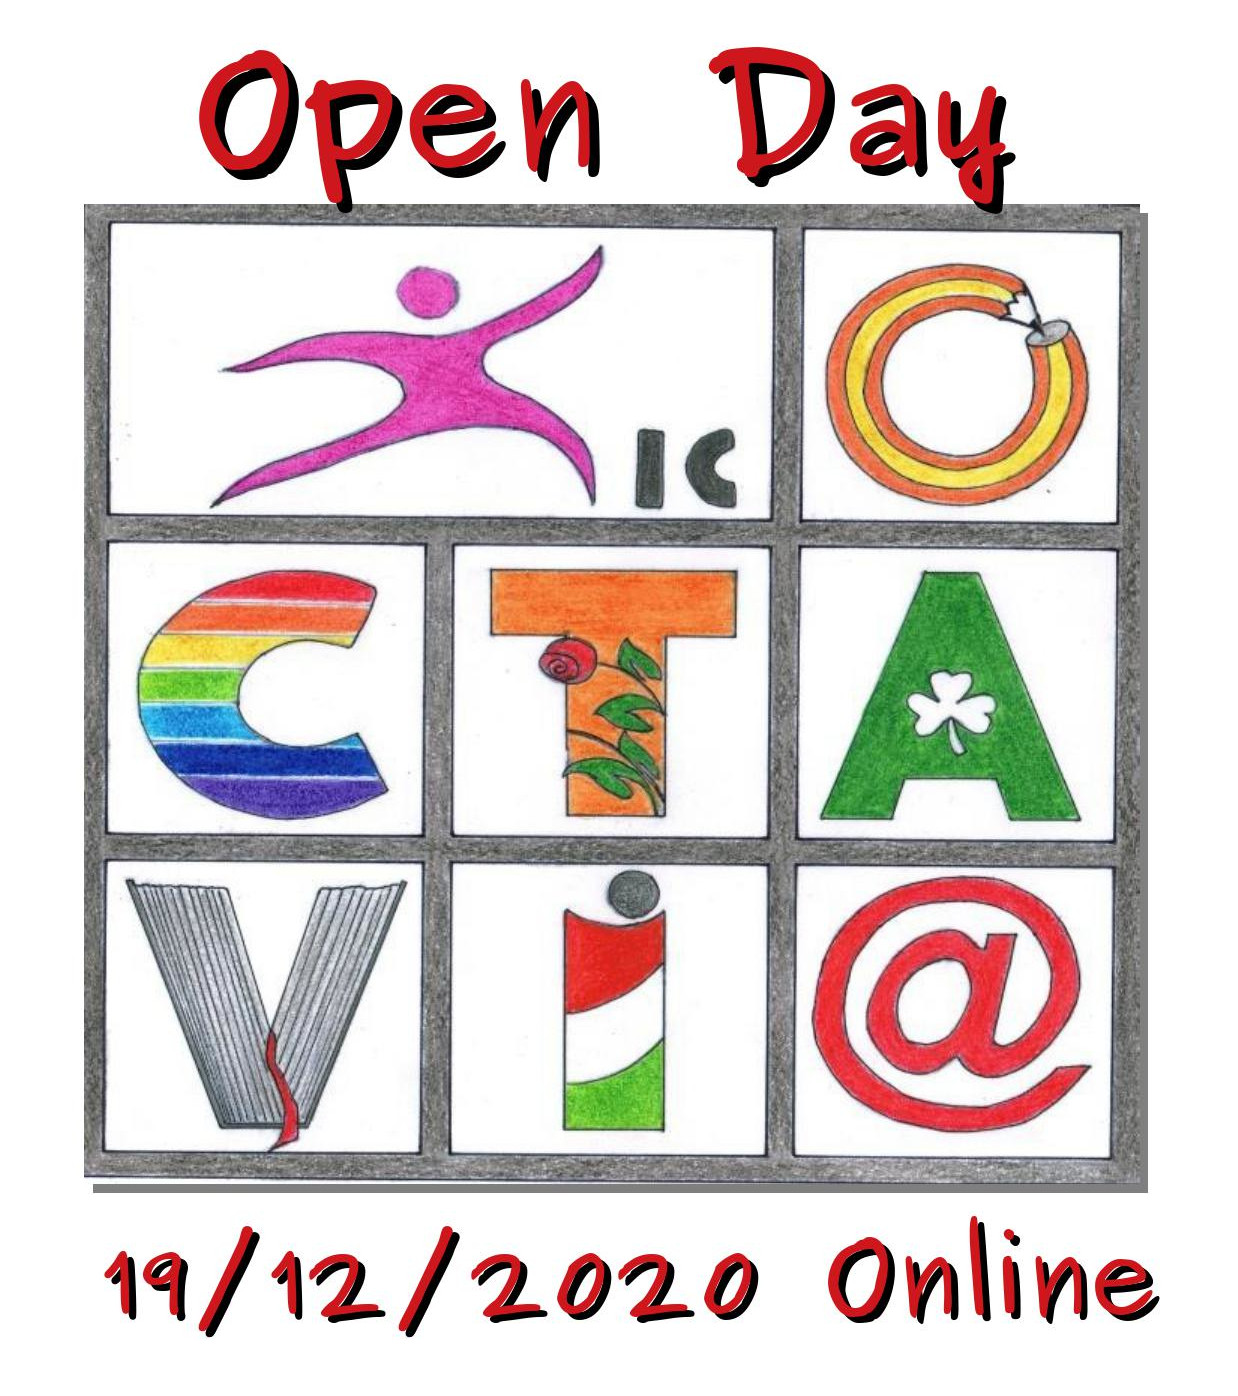 Open-day online 2020